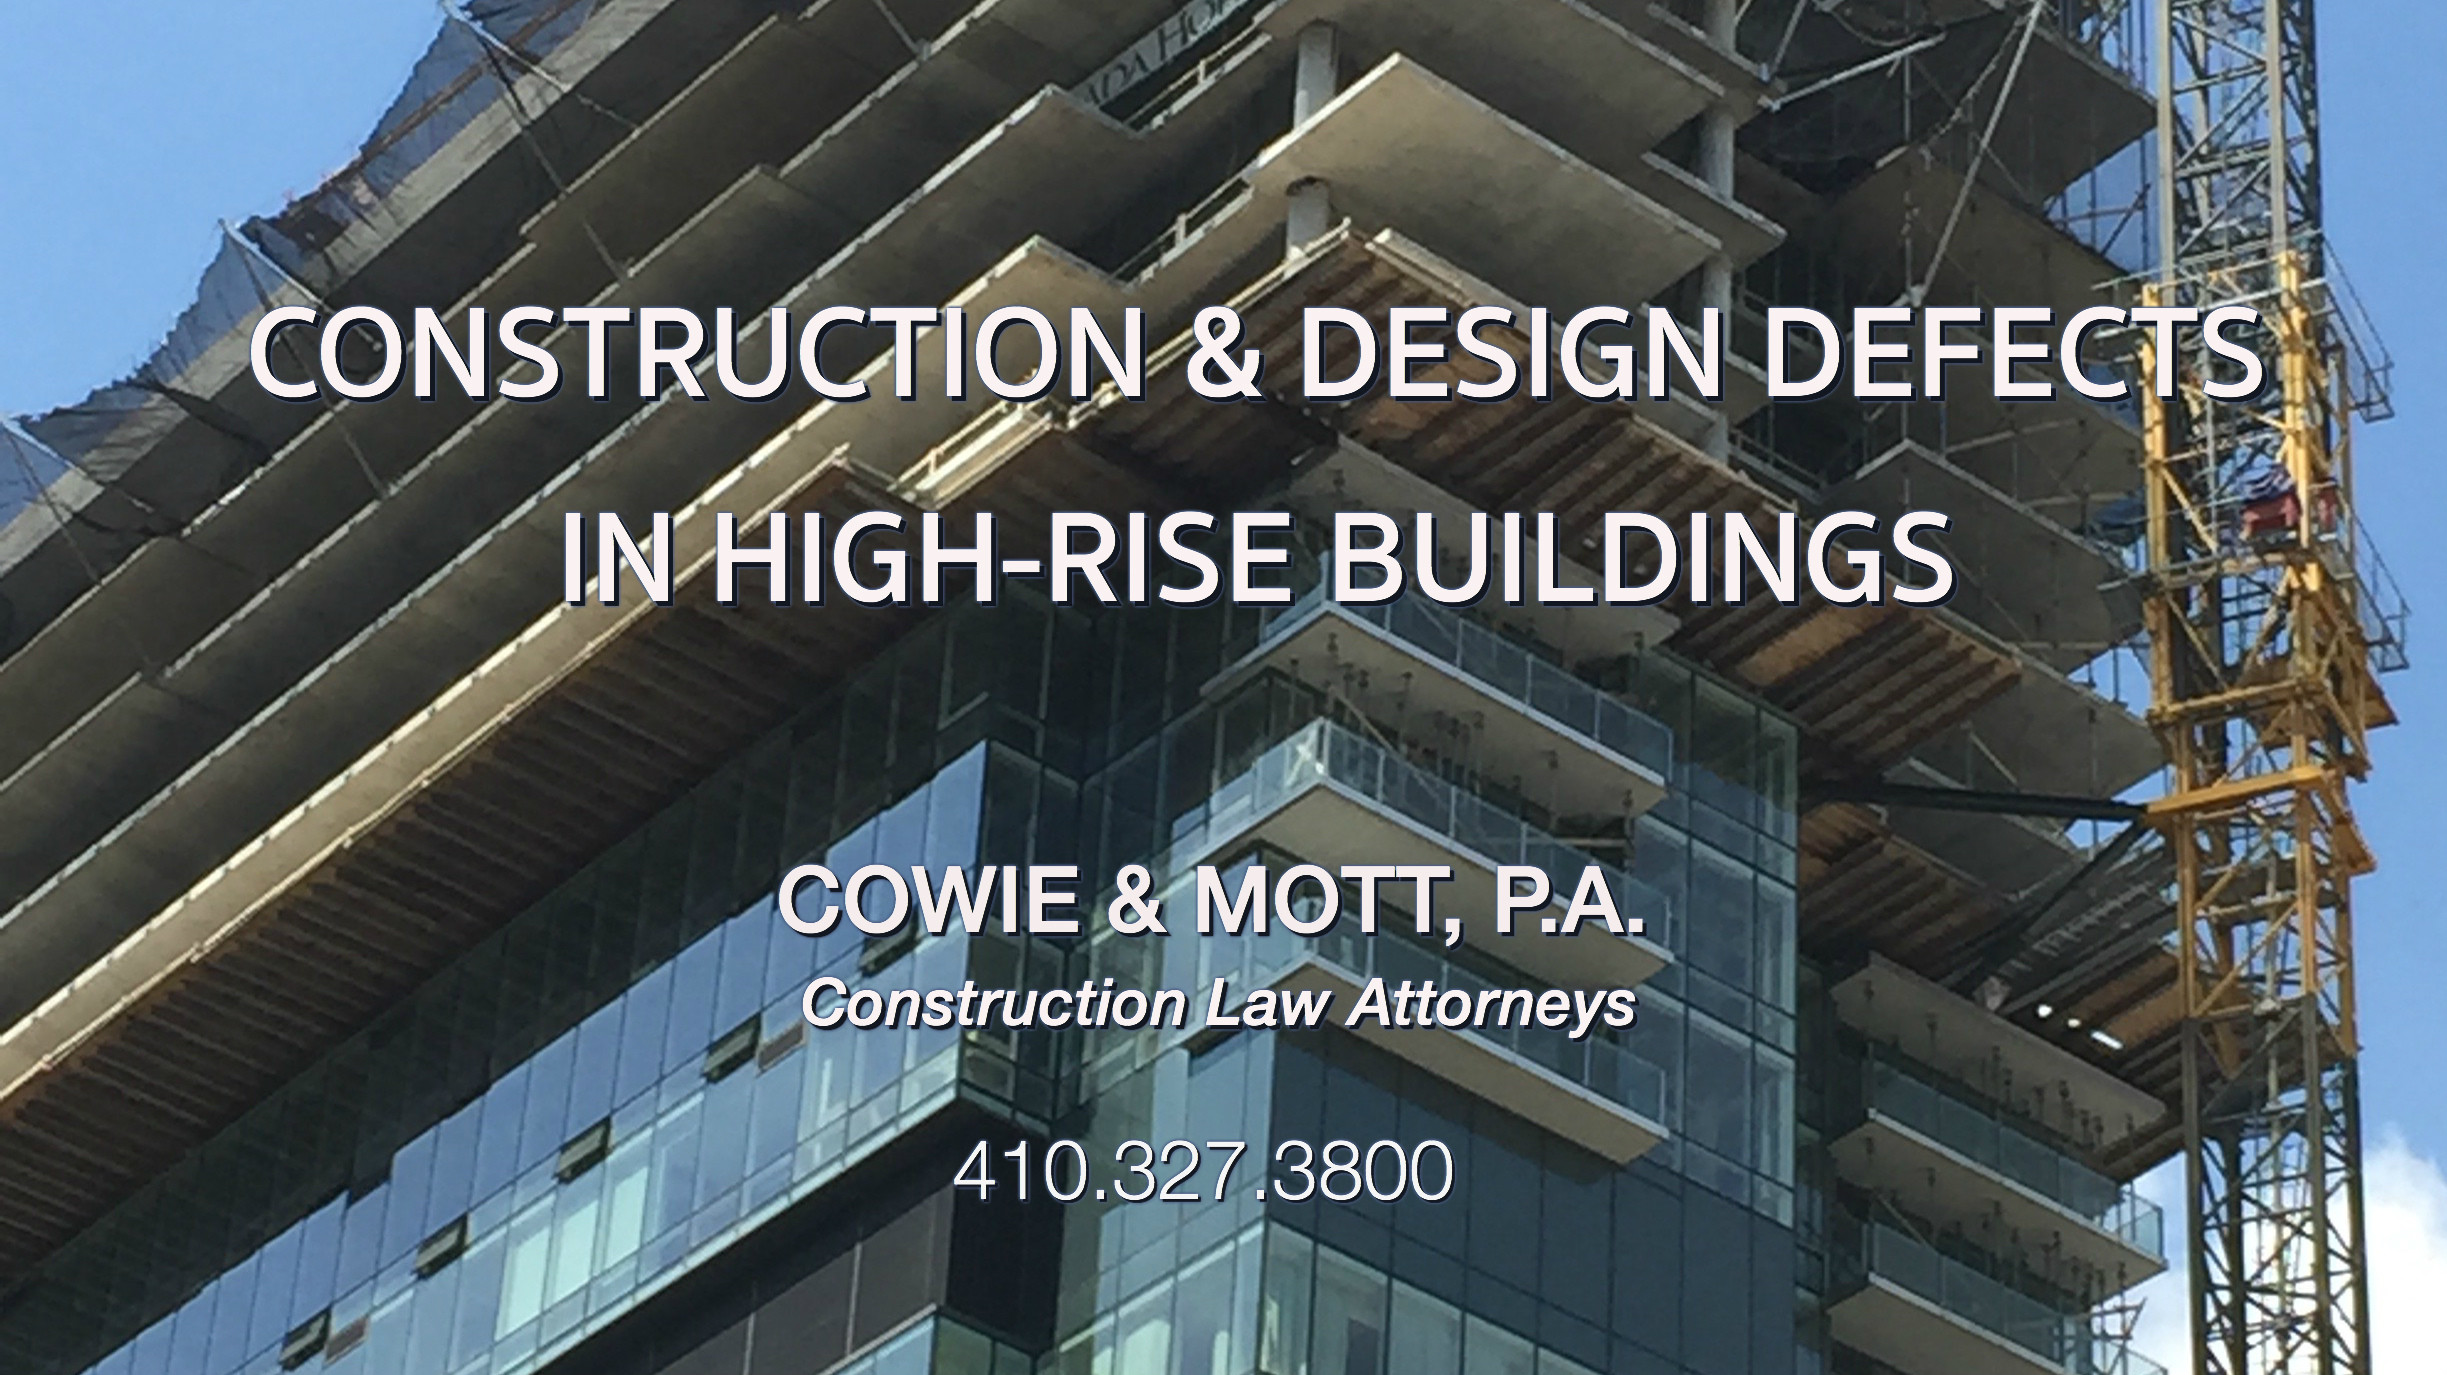 Marylnd Construction & Design Defects Attorneys High-Rise Buildings